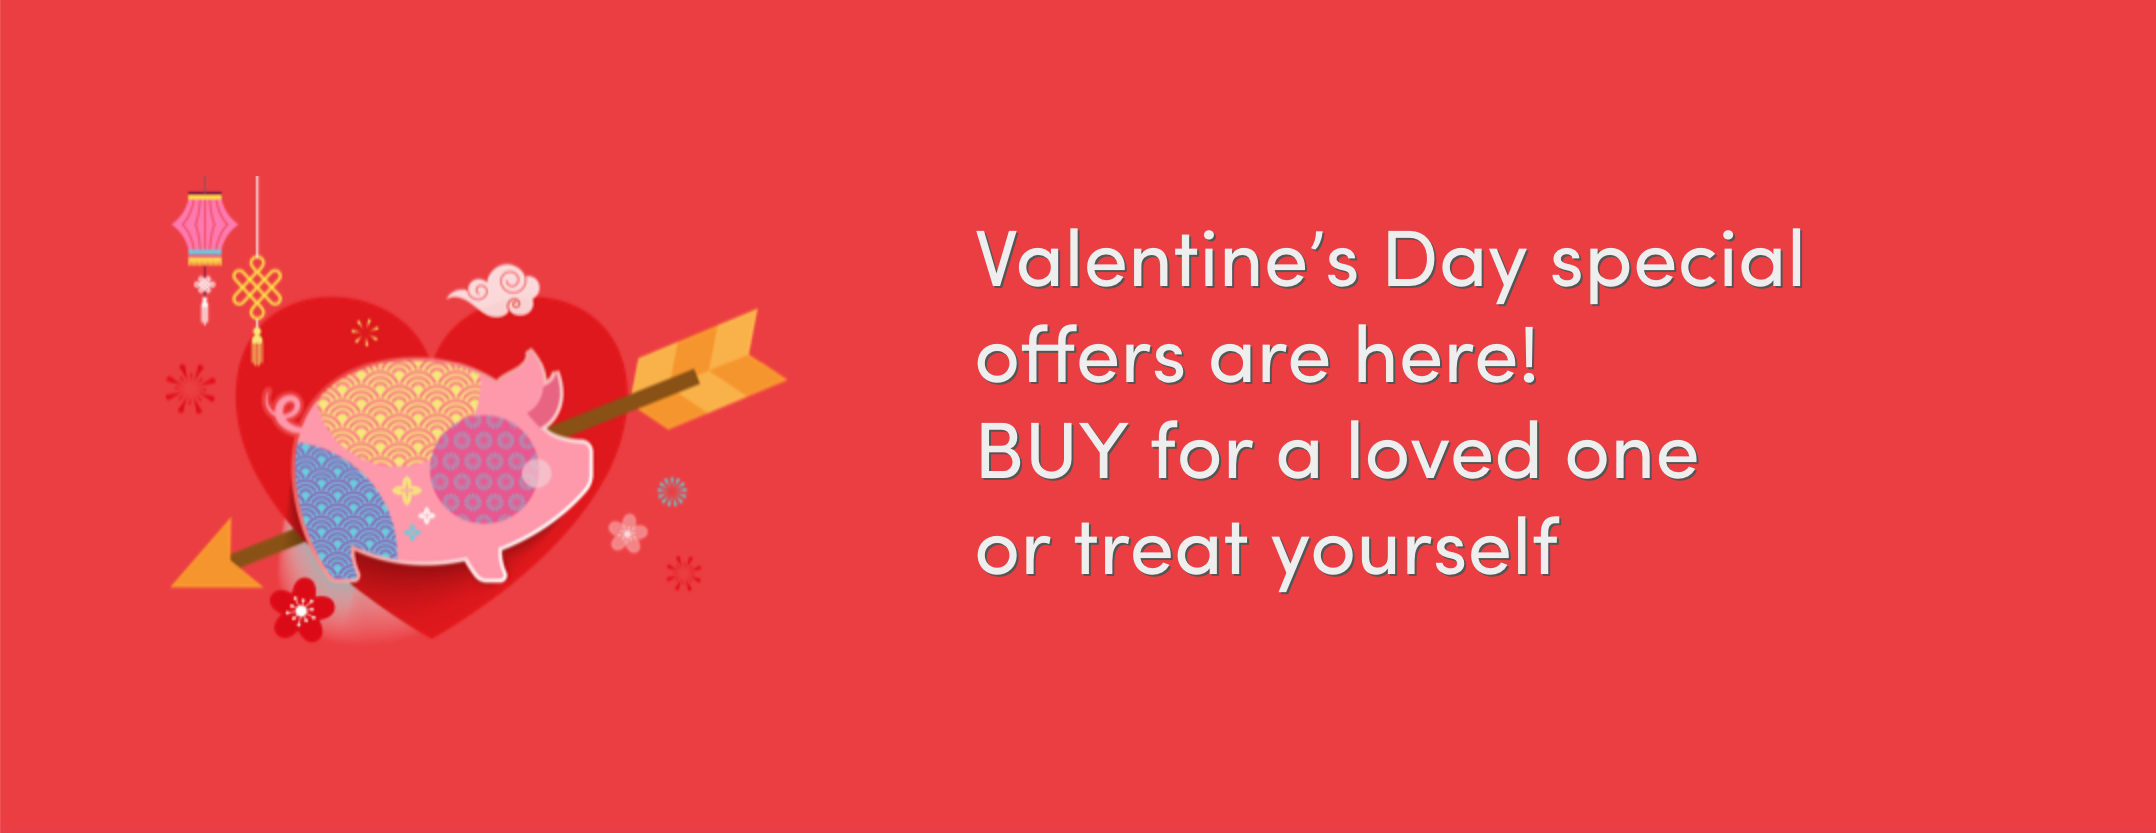 Make Valentine's Day easy this year with one of these great offers